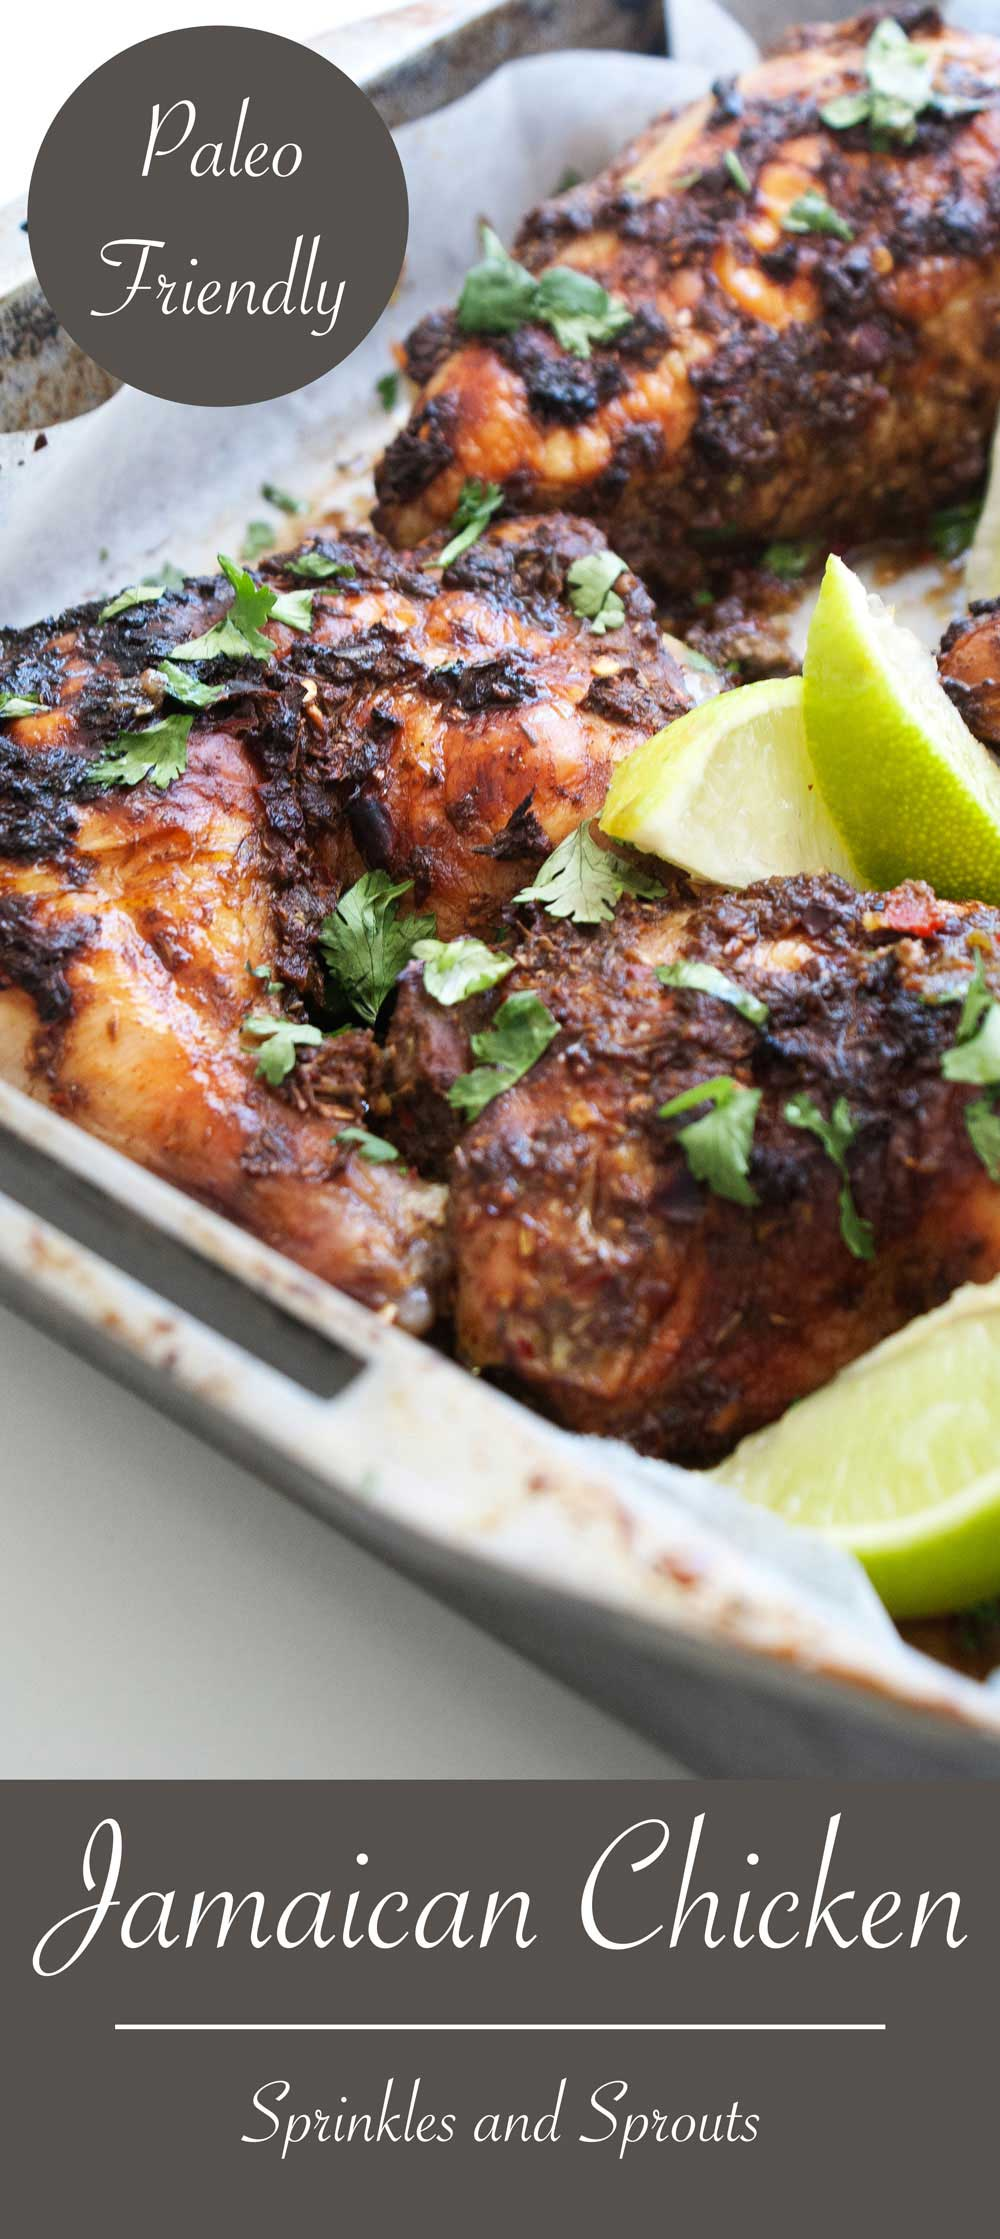 jamaican chicken  sprinkles and sprouts